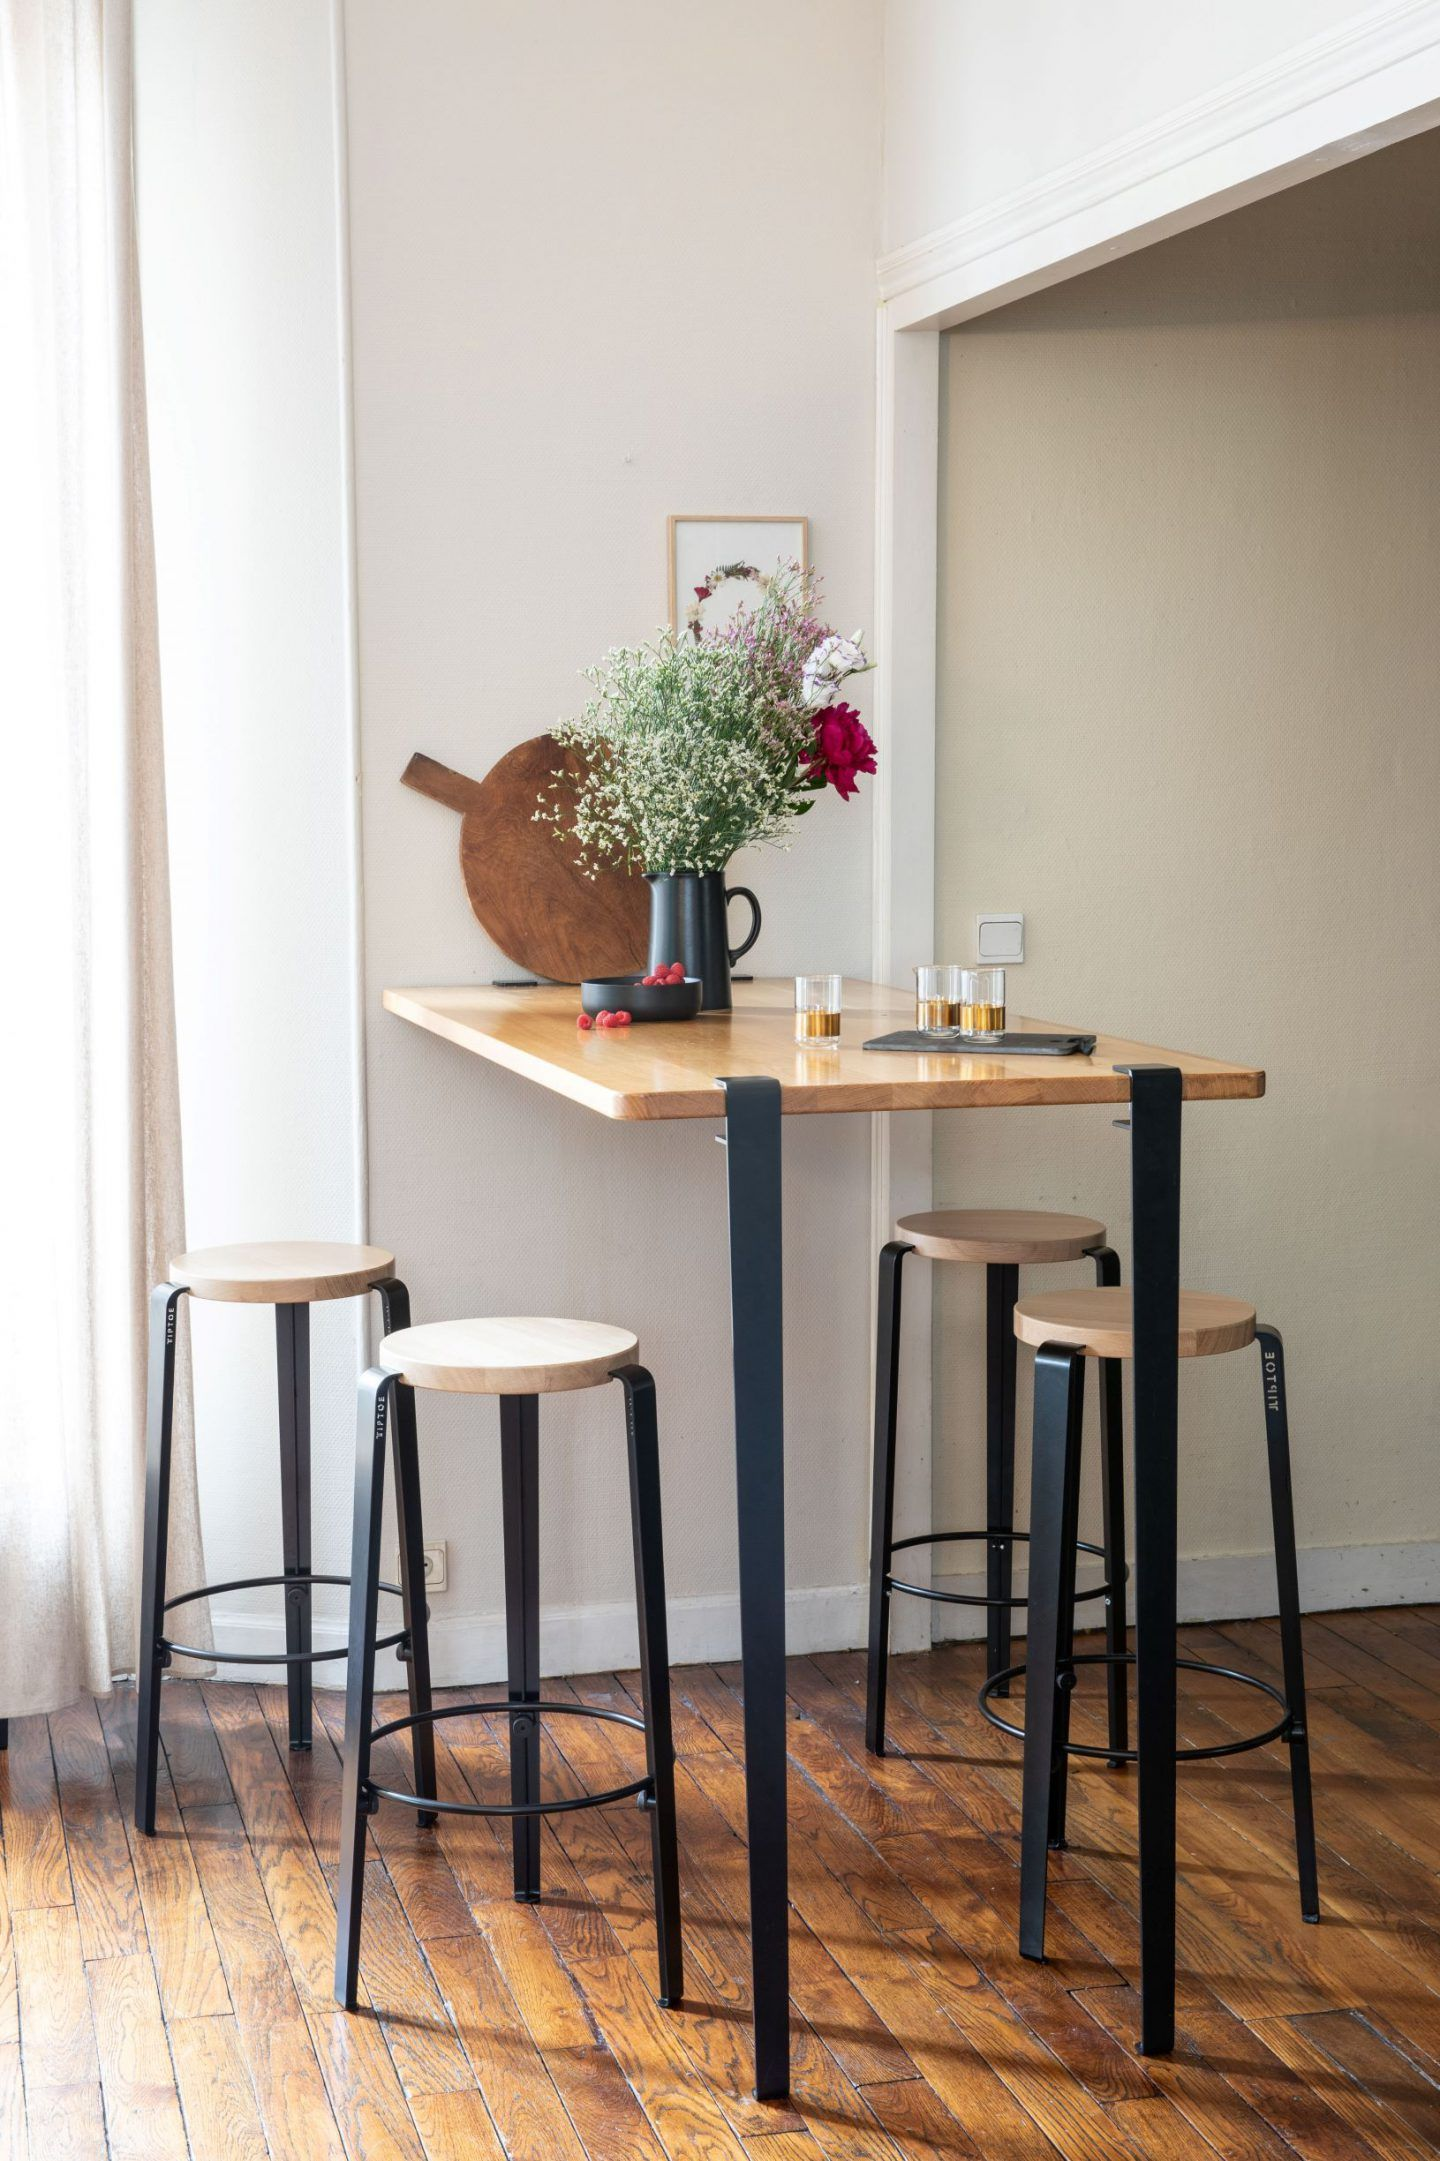 Pied Pour Table Bar Et Mange Debout Tiptoe Serre Joint Couleurs In 2020 Kitchen Bar Table High Bar Table Bar Table #small #bars #for #living #room